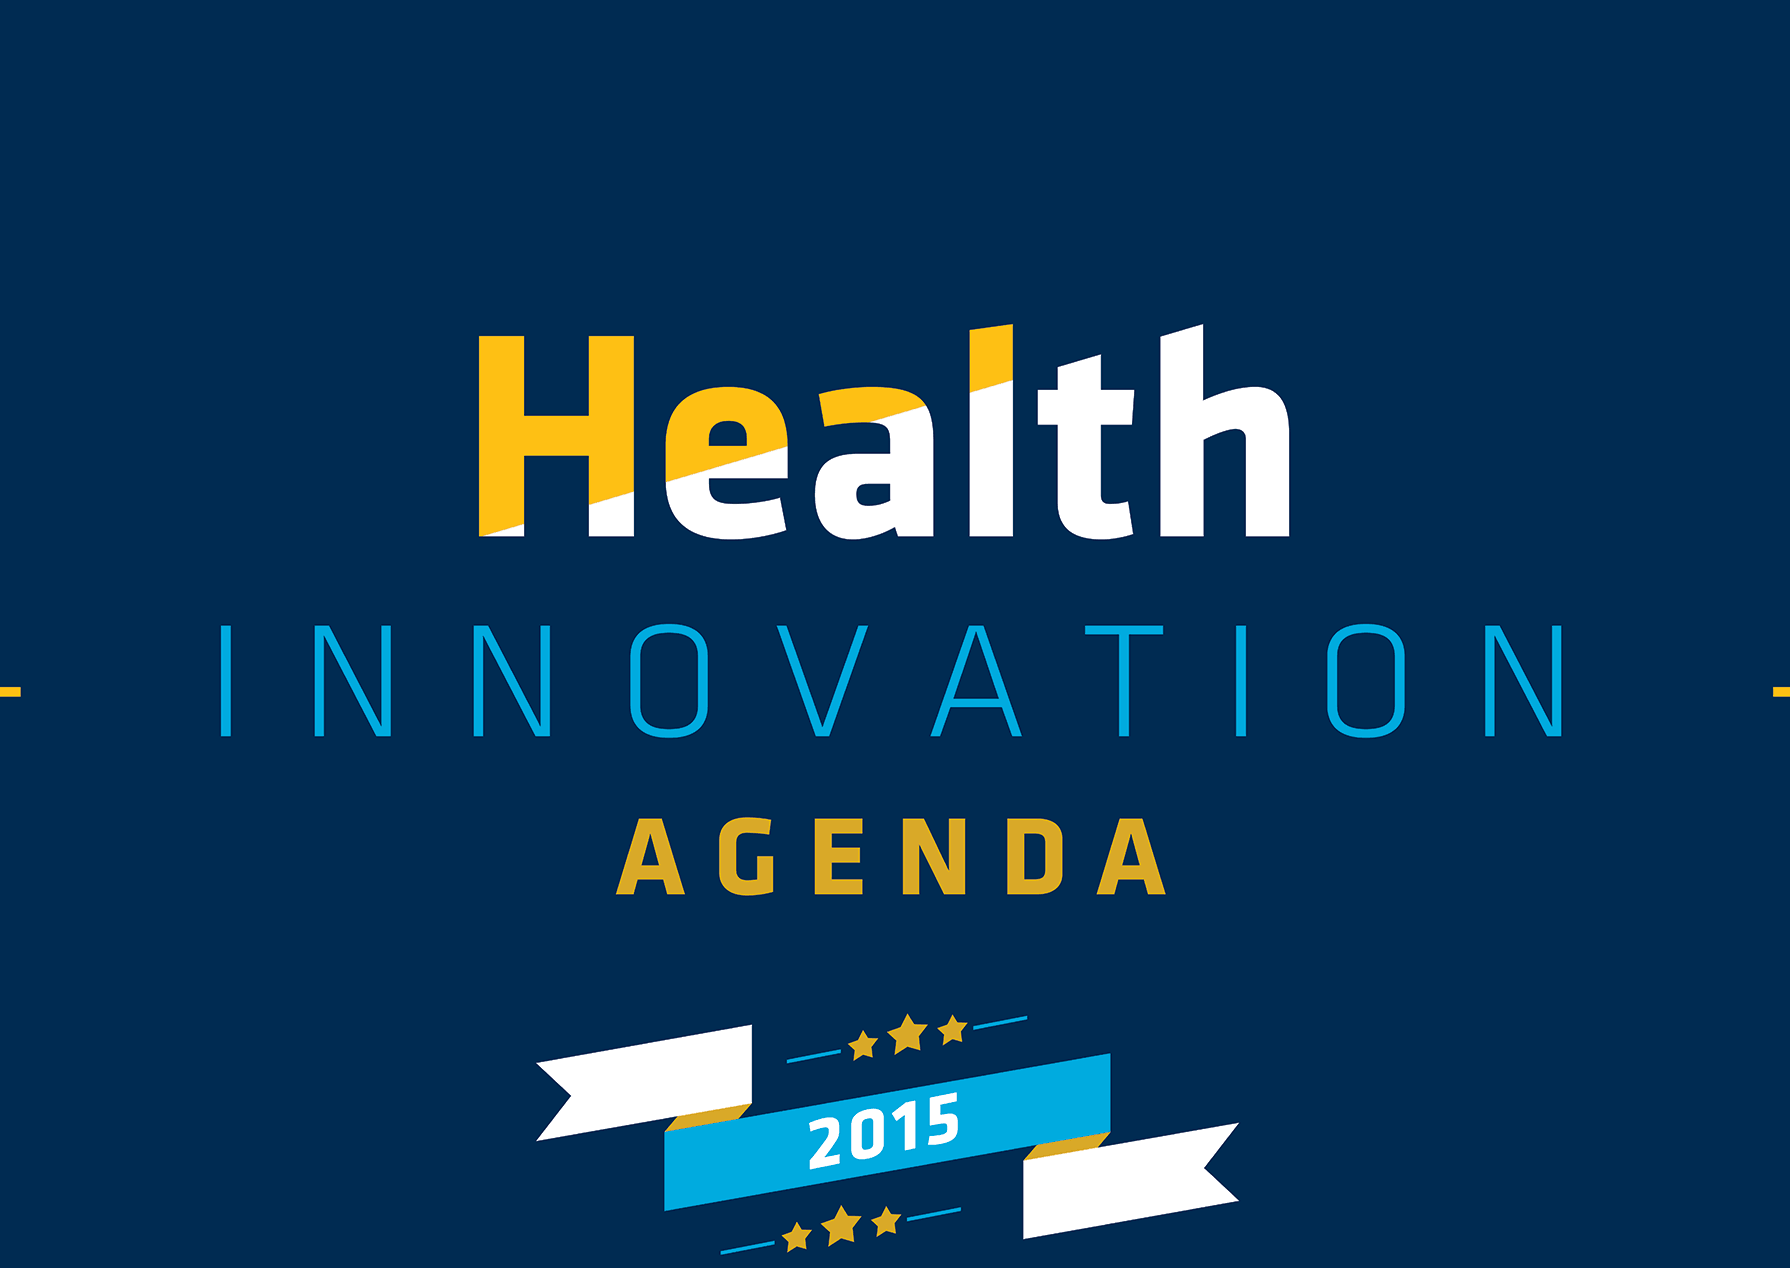 Health Innovation